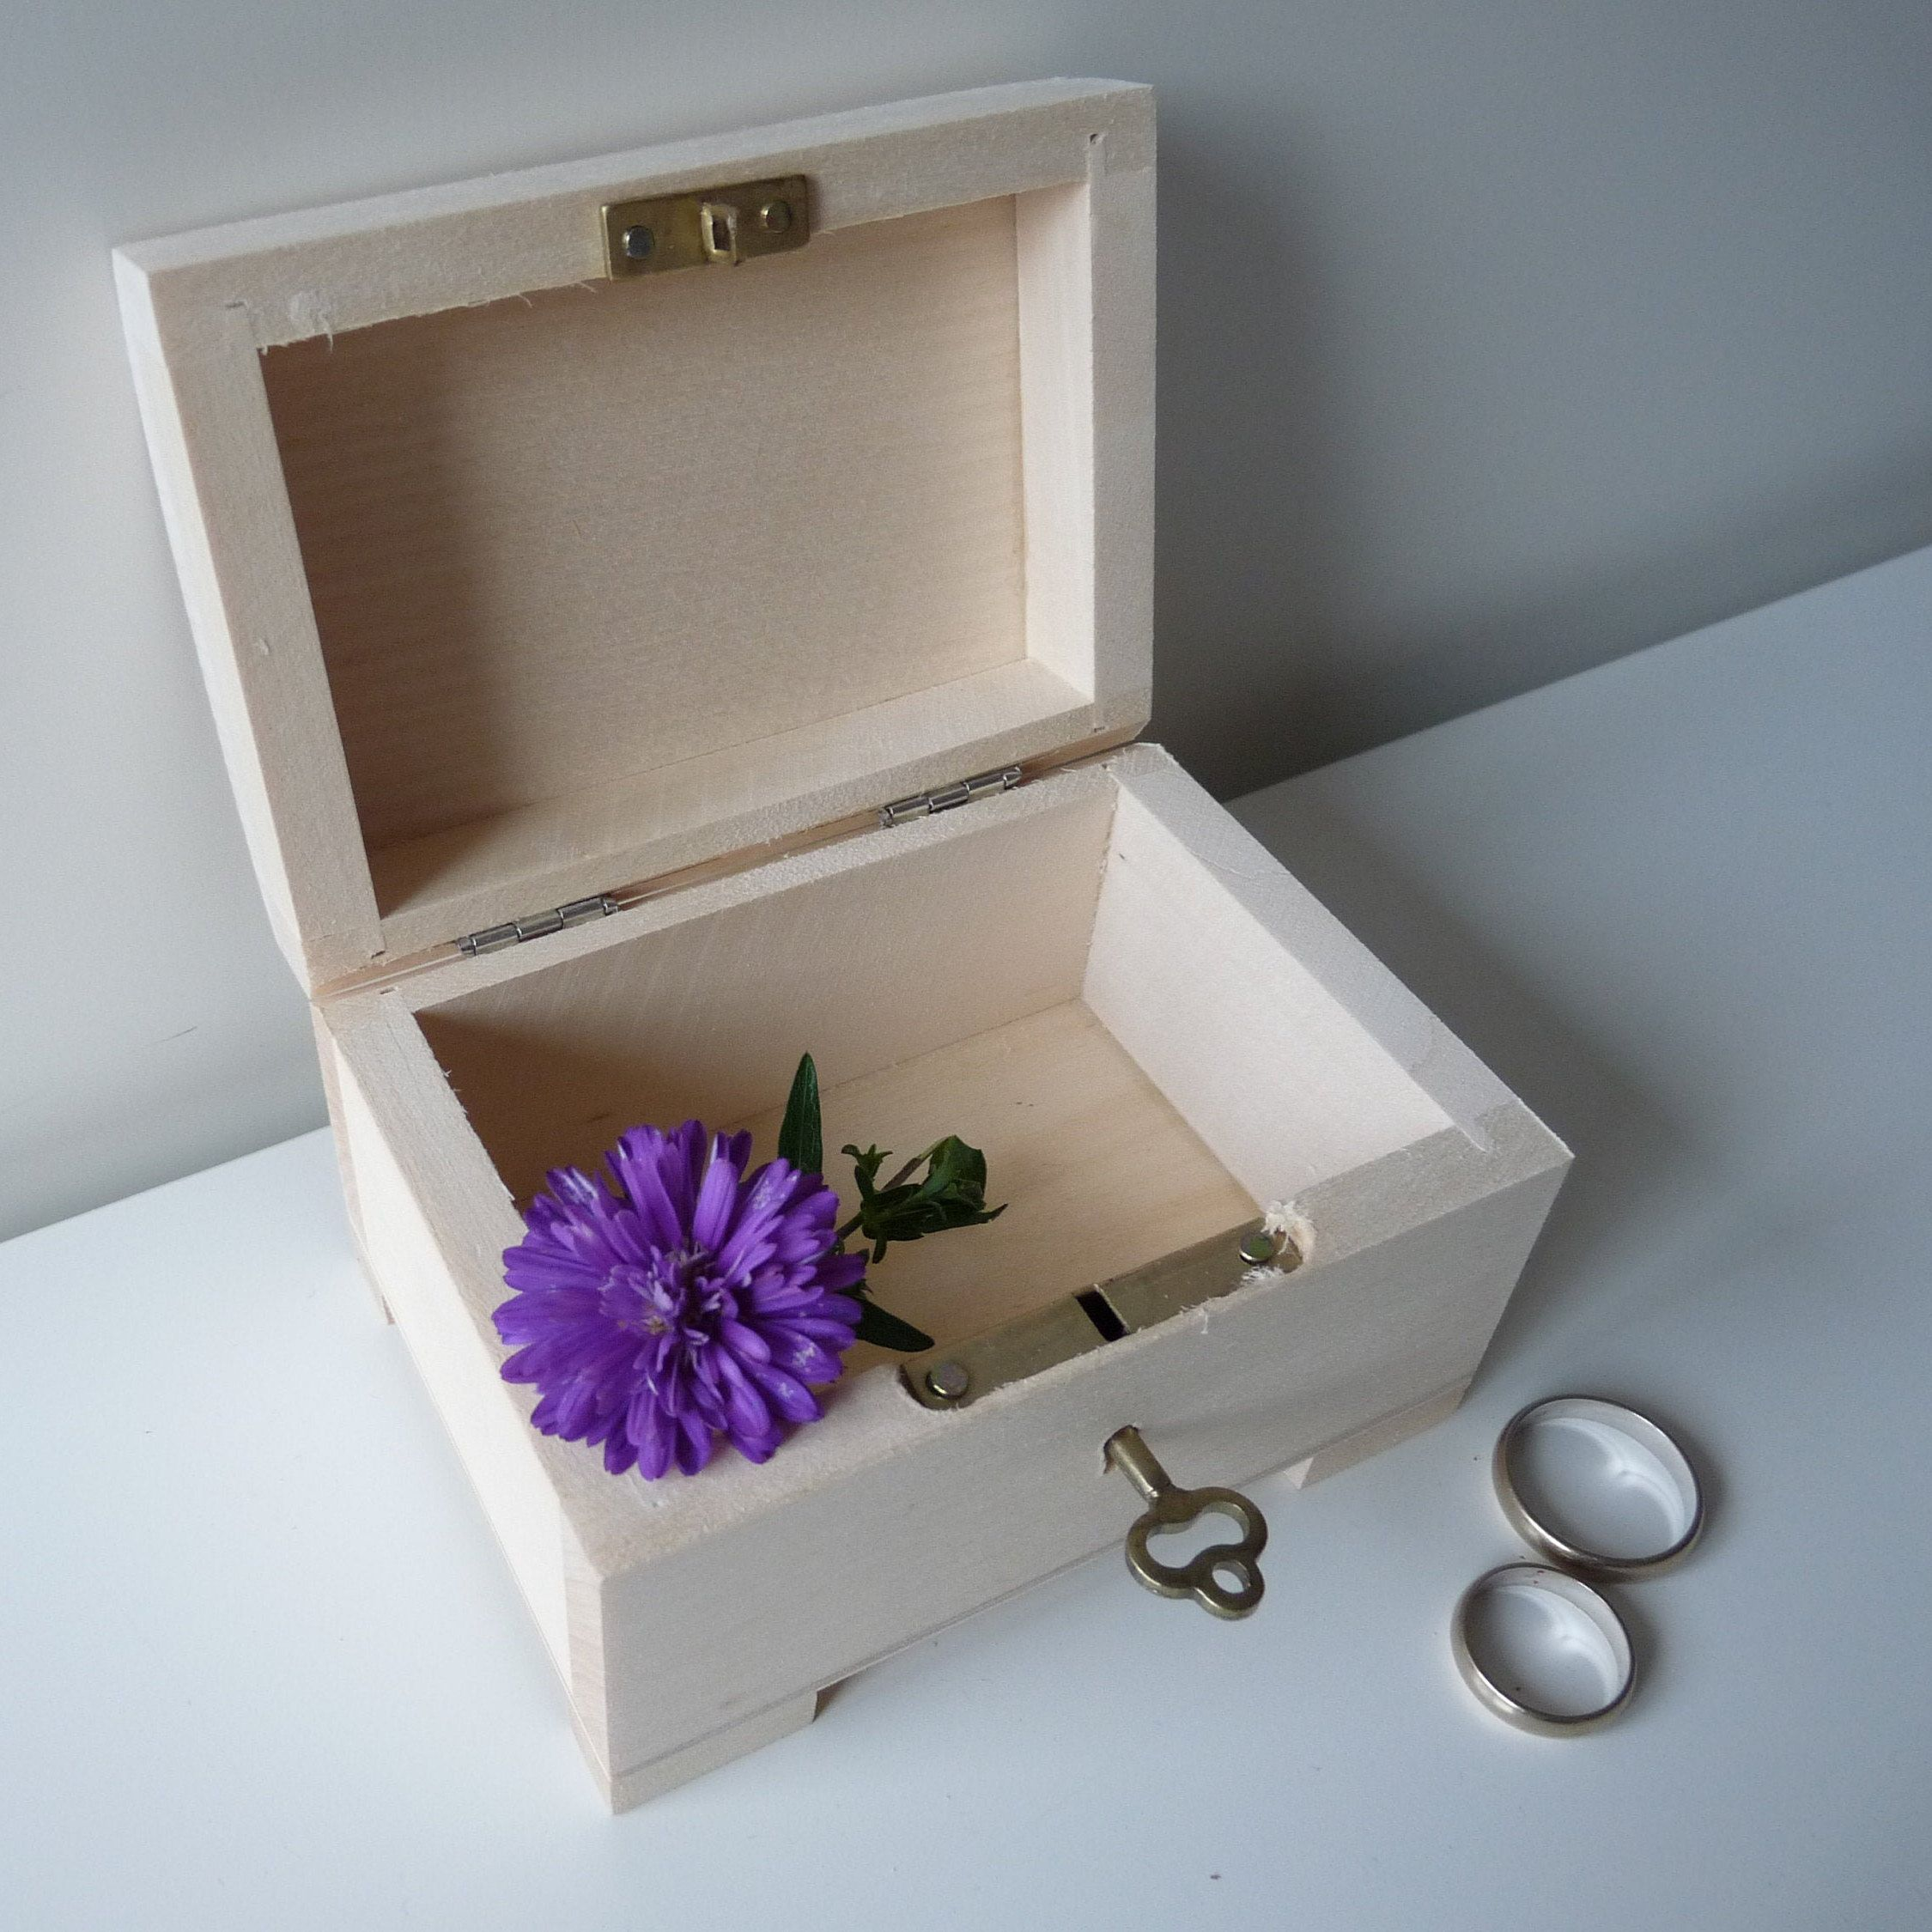 Litlle Wooden Ring Box With Key Lock Unfinished Wooden Treasure Chest With Key Unfinished Jewelry Engagement Wedding Ring Box Trinket Wooden Ring Box Wooden Rings Wedding Ring Box